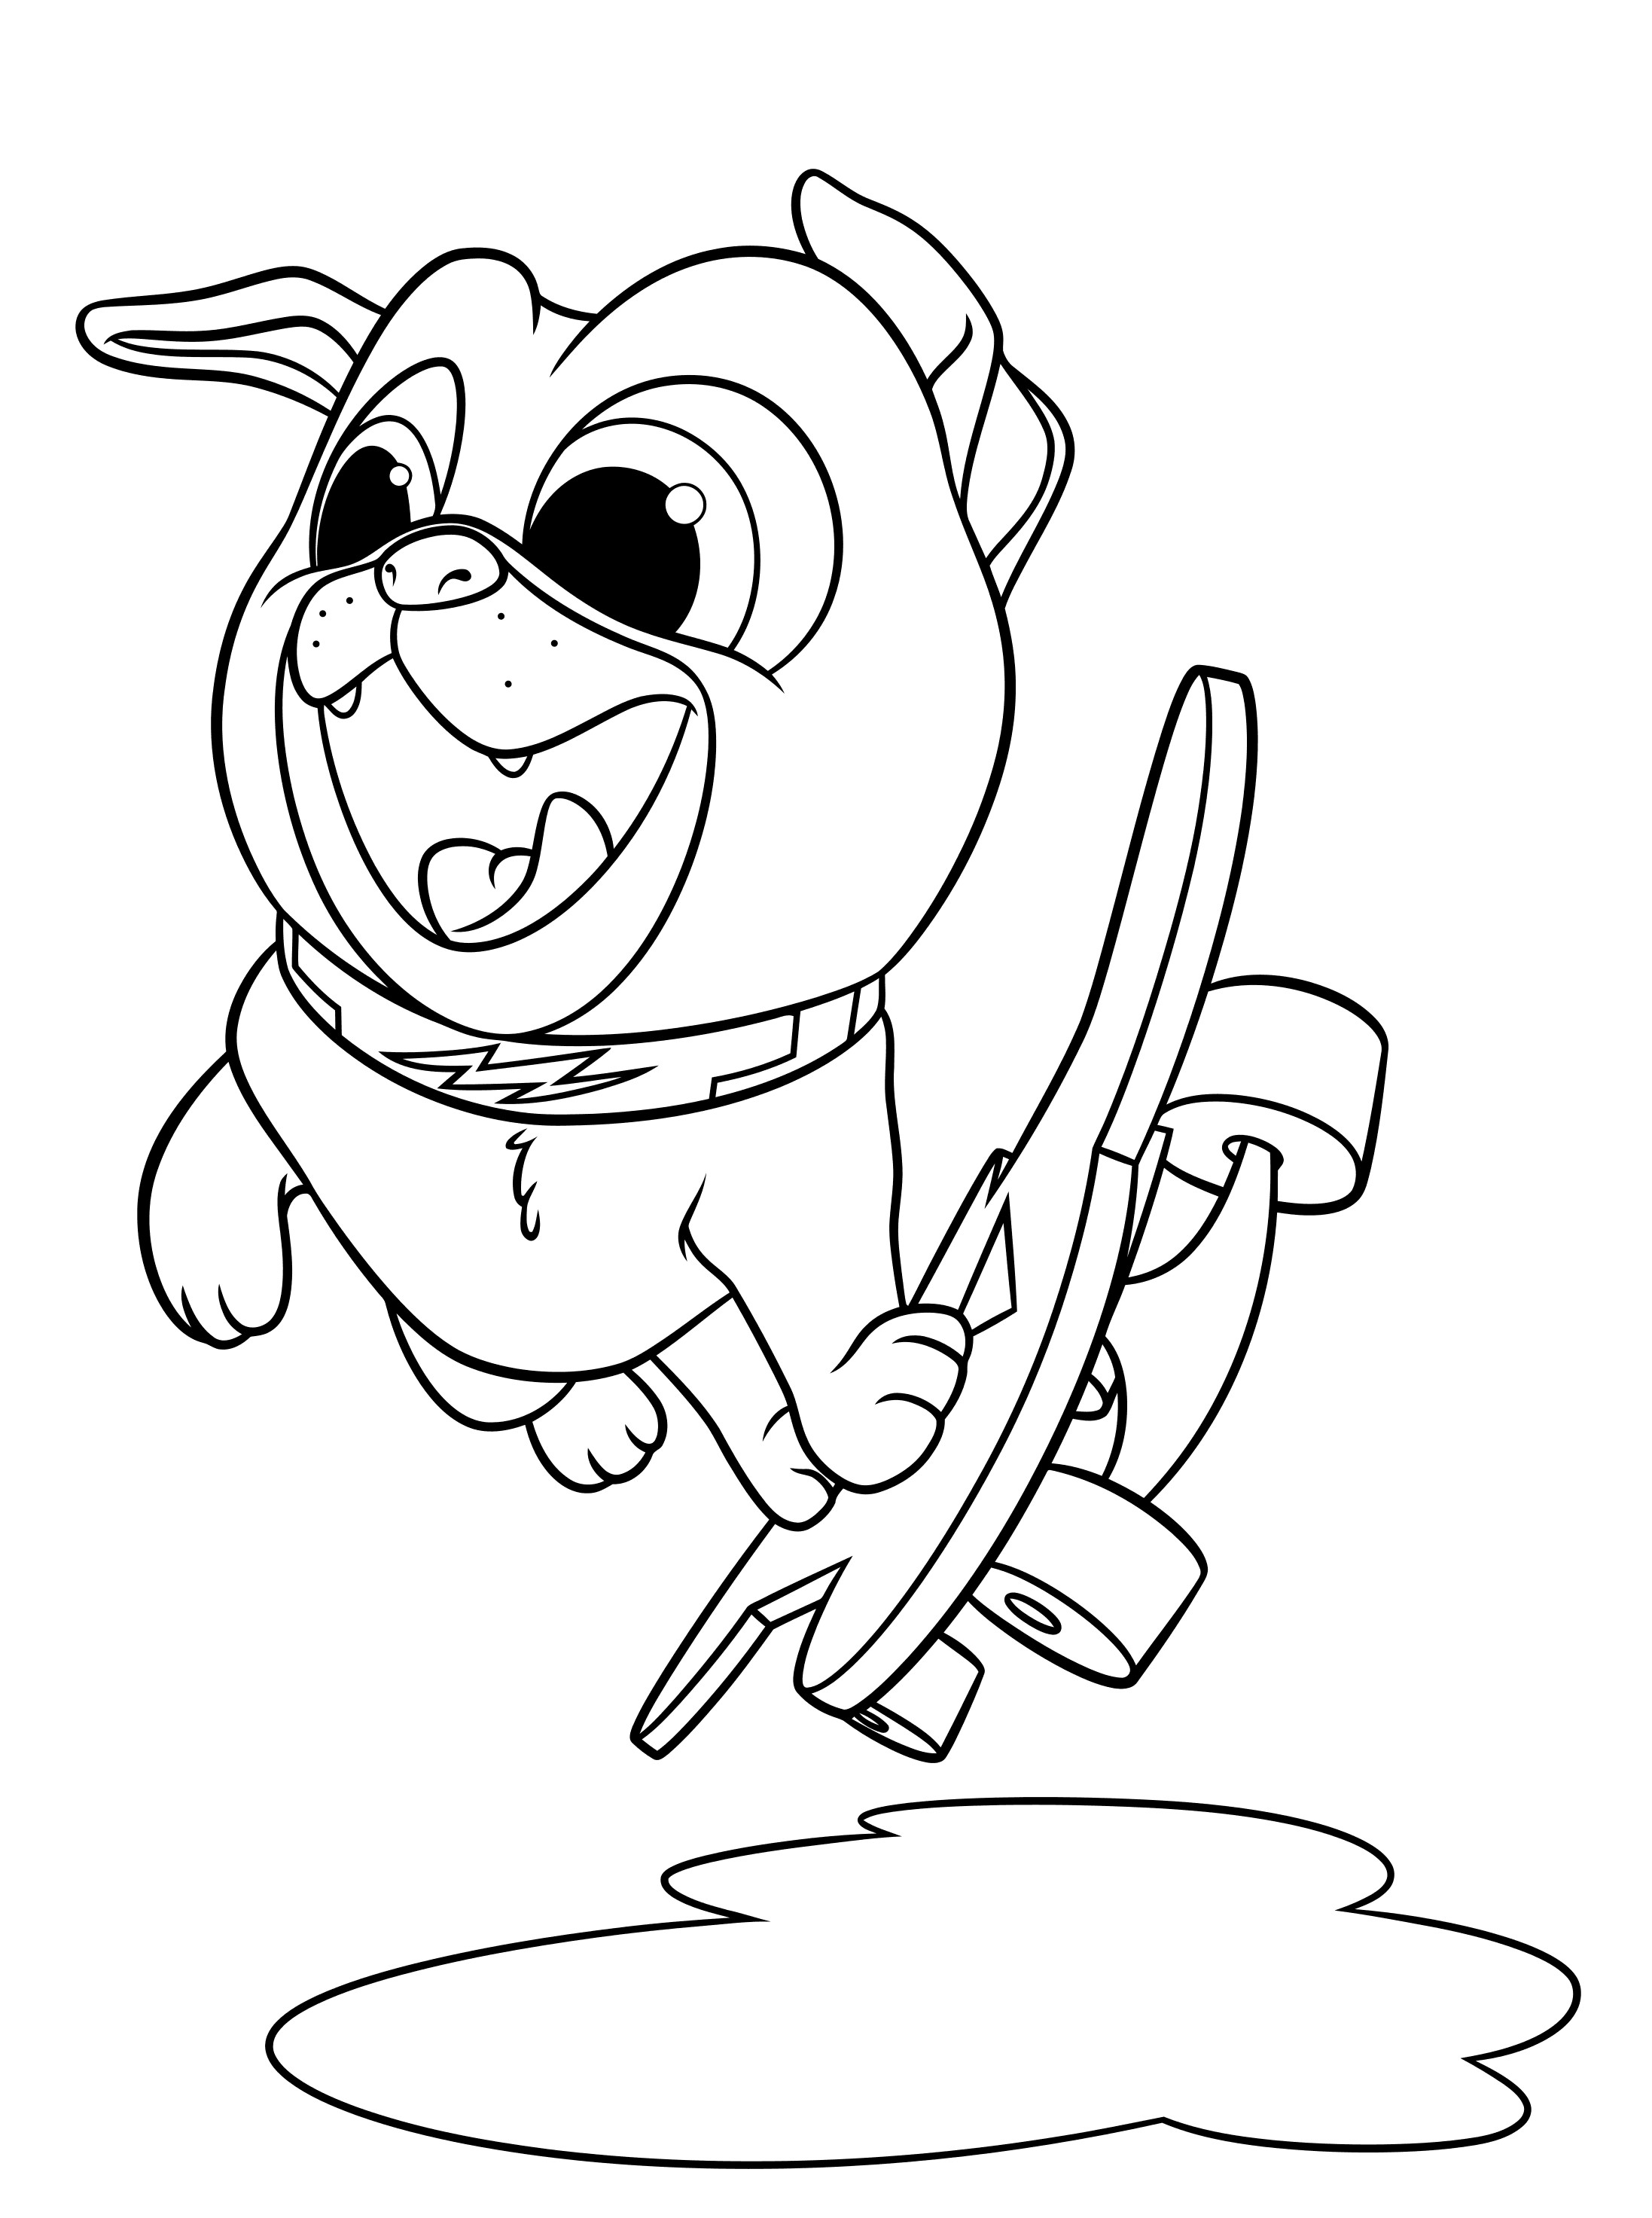 printable puppy pictures puppy dog pals coloring pages to download and print for free pictures puppy printable